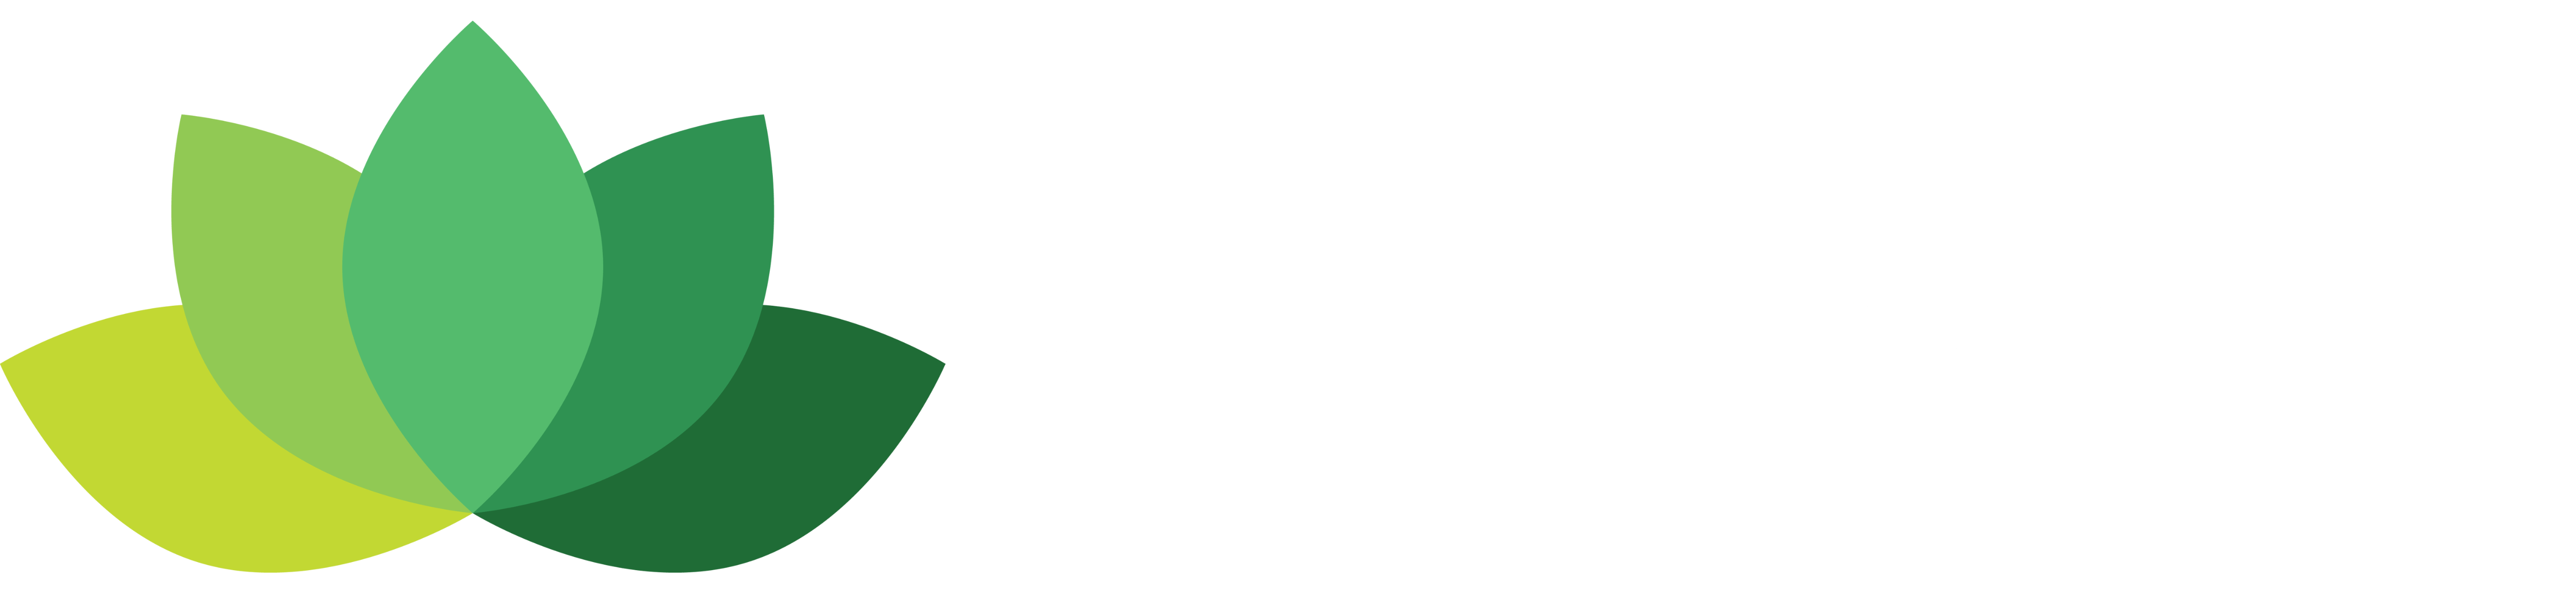 Dr. Bronfman Beauty